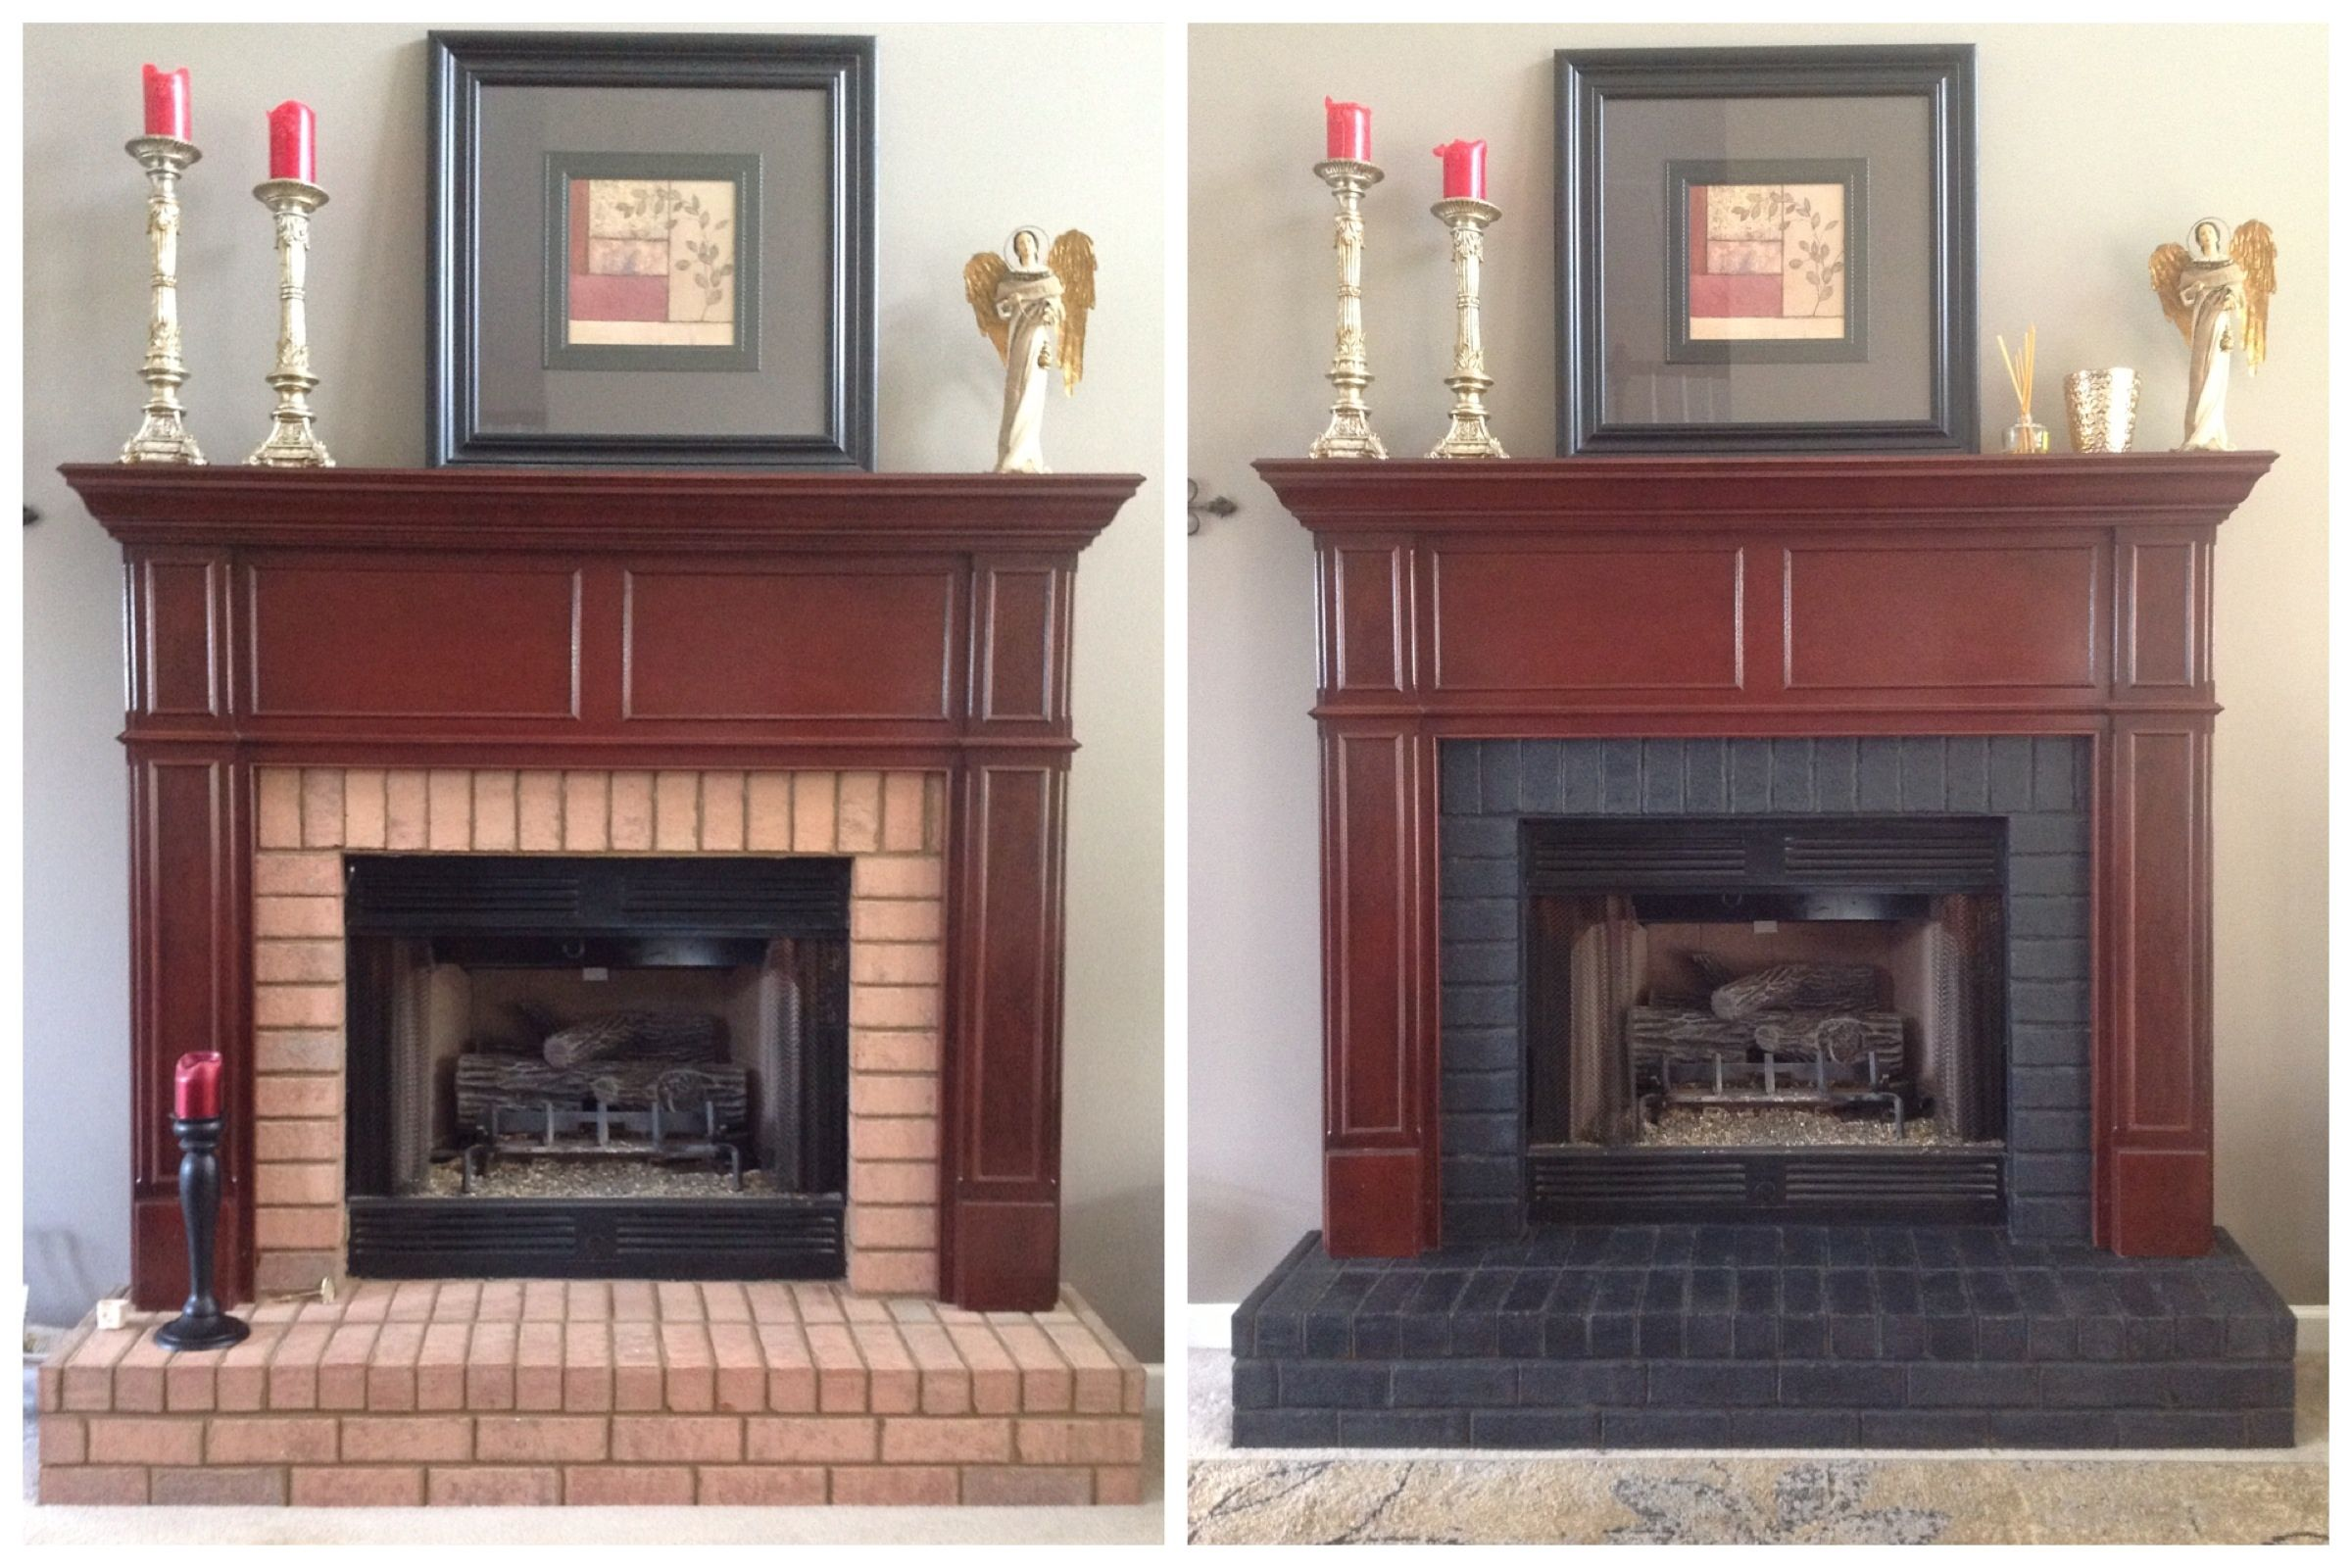 Concrete Stain Brick Fireplace Makeover My Not So Cute Pink Brick Fireplace Looks So Much Better No Fireplace Makeover Brick Fireplace Makeover Stained Brick